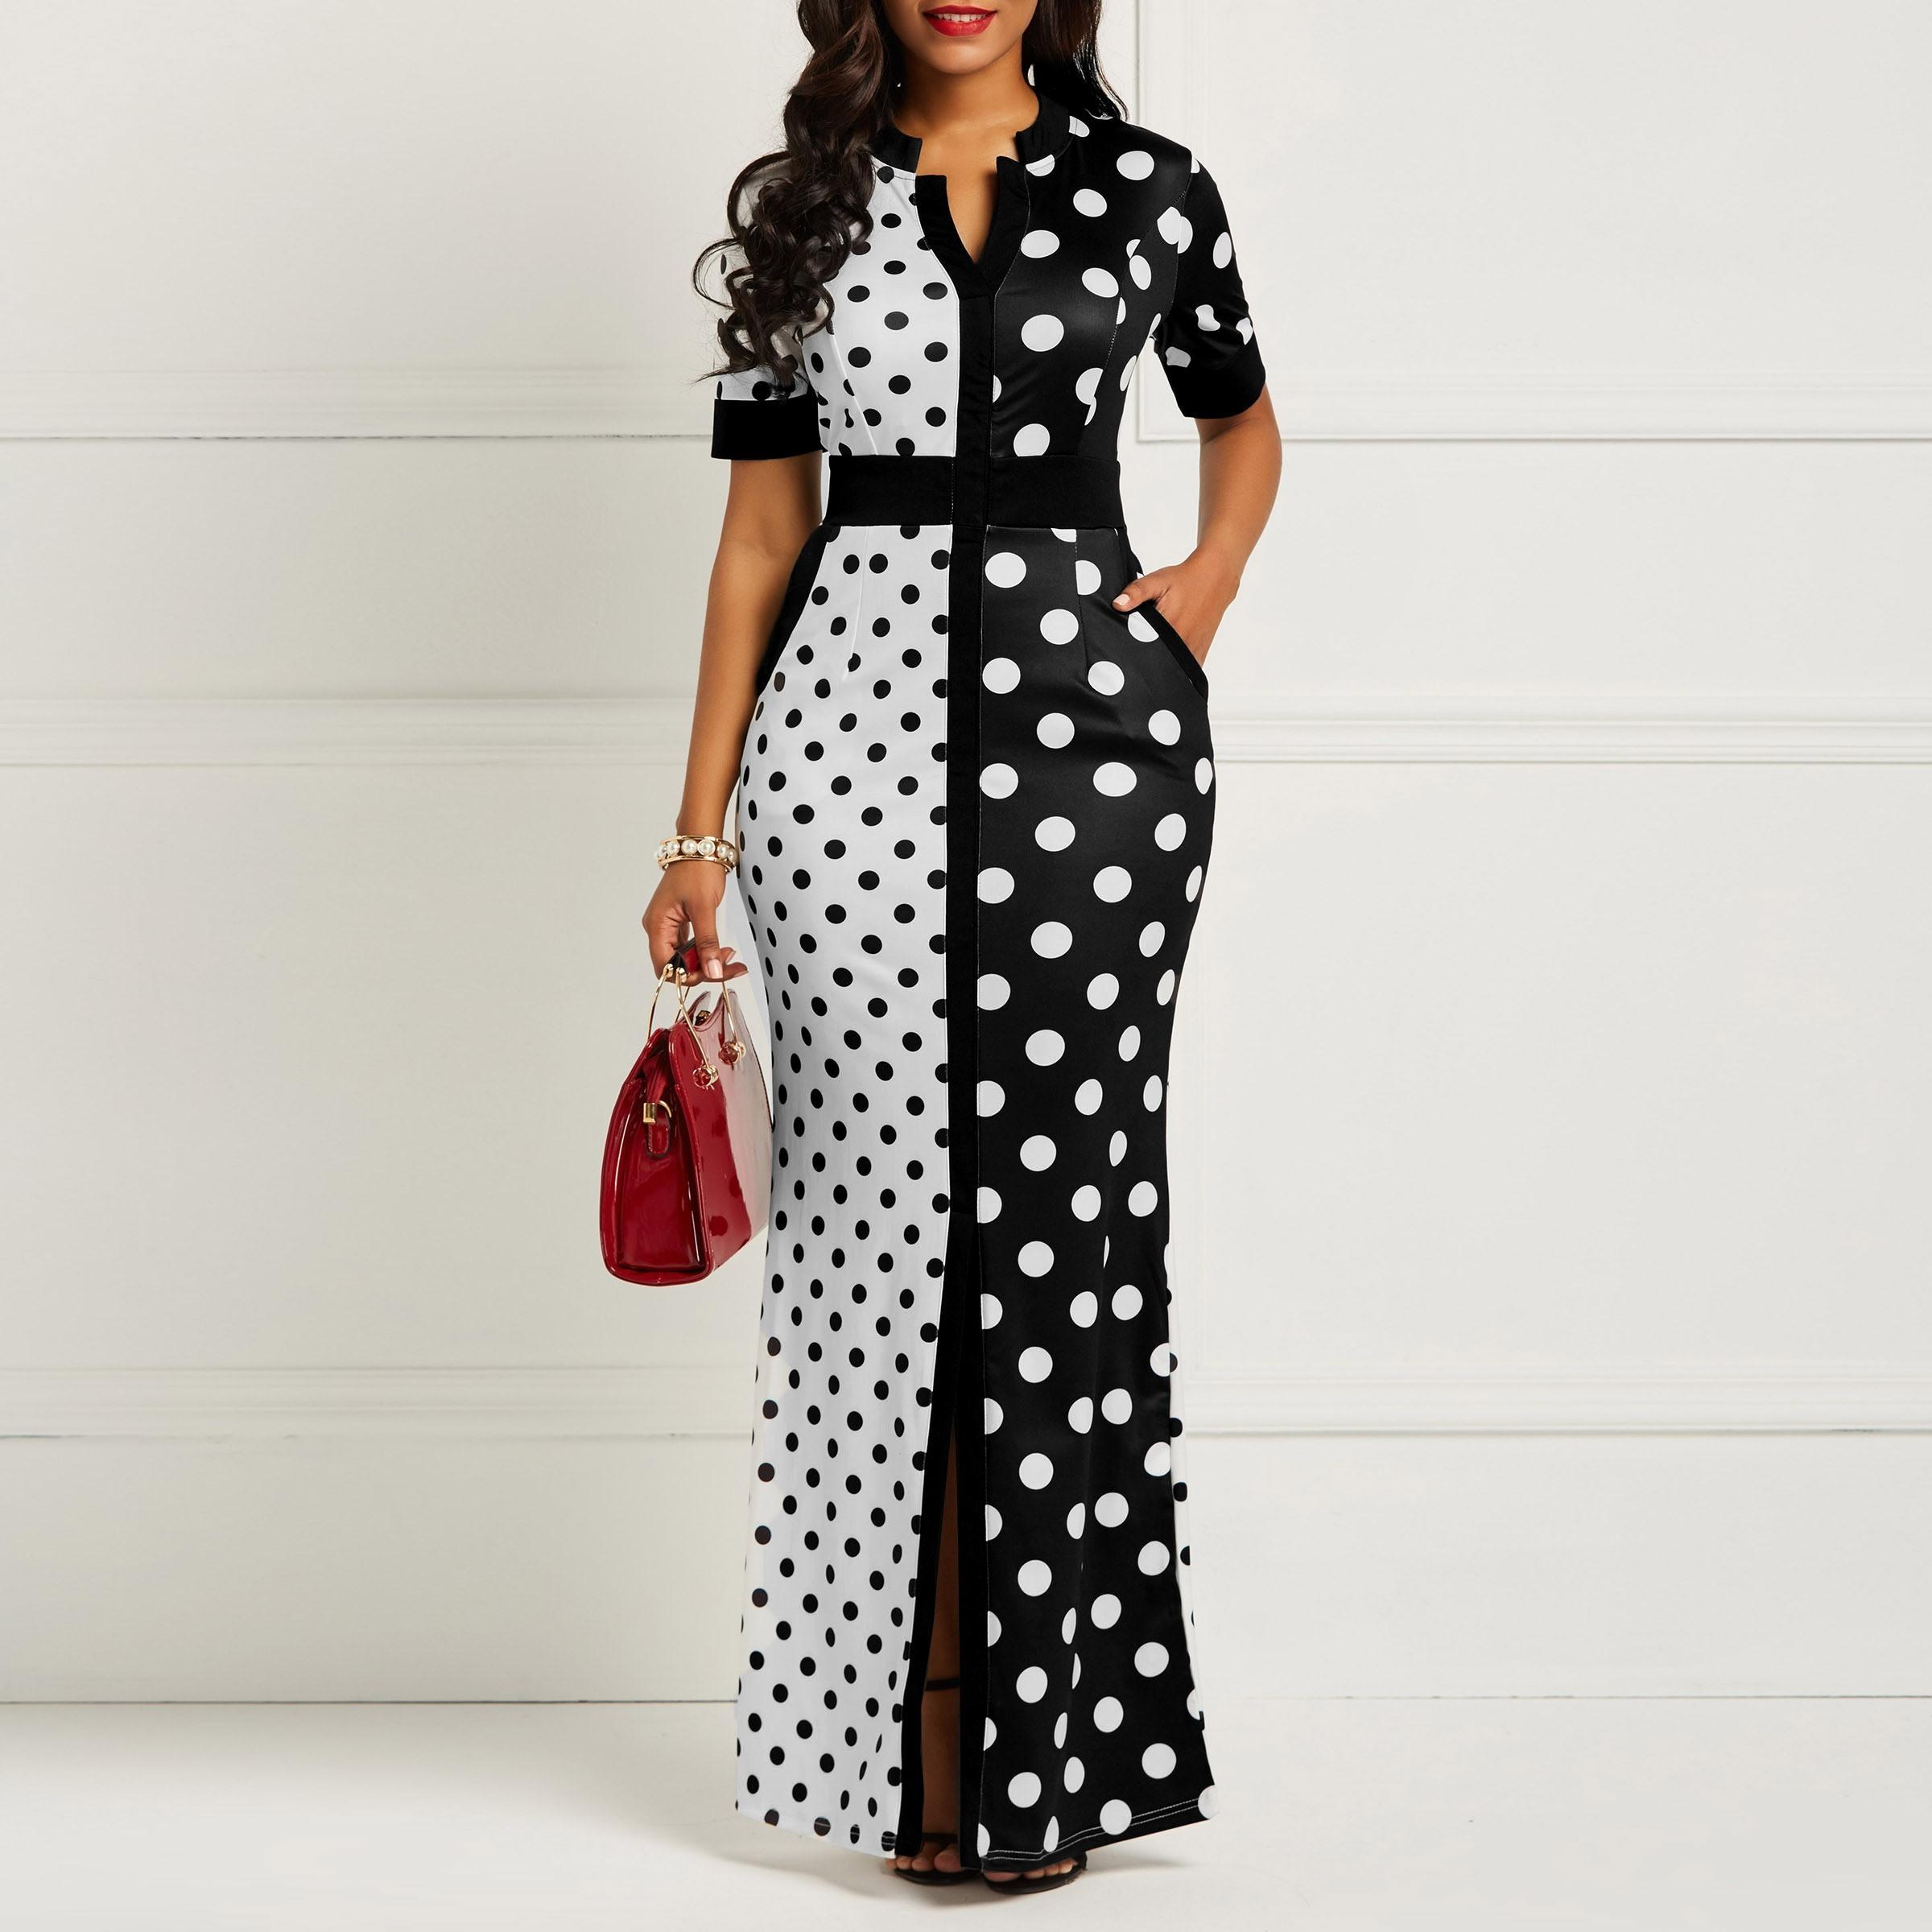 deb0bf89b3f6 Clocolor African Dress Vintage Polka Dot White Black Printed Retro Bodycon  Women Summer Short Sleeve Plus Size Long Maxi Dress Y19021409 Formal  Cocktail ...